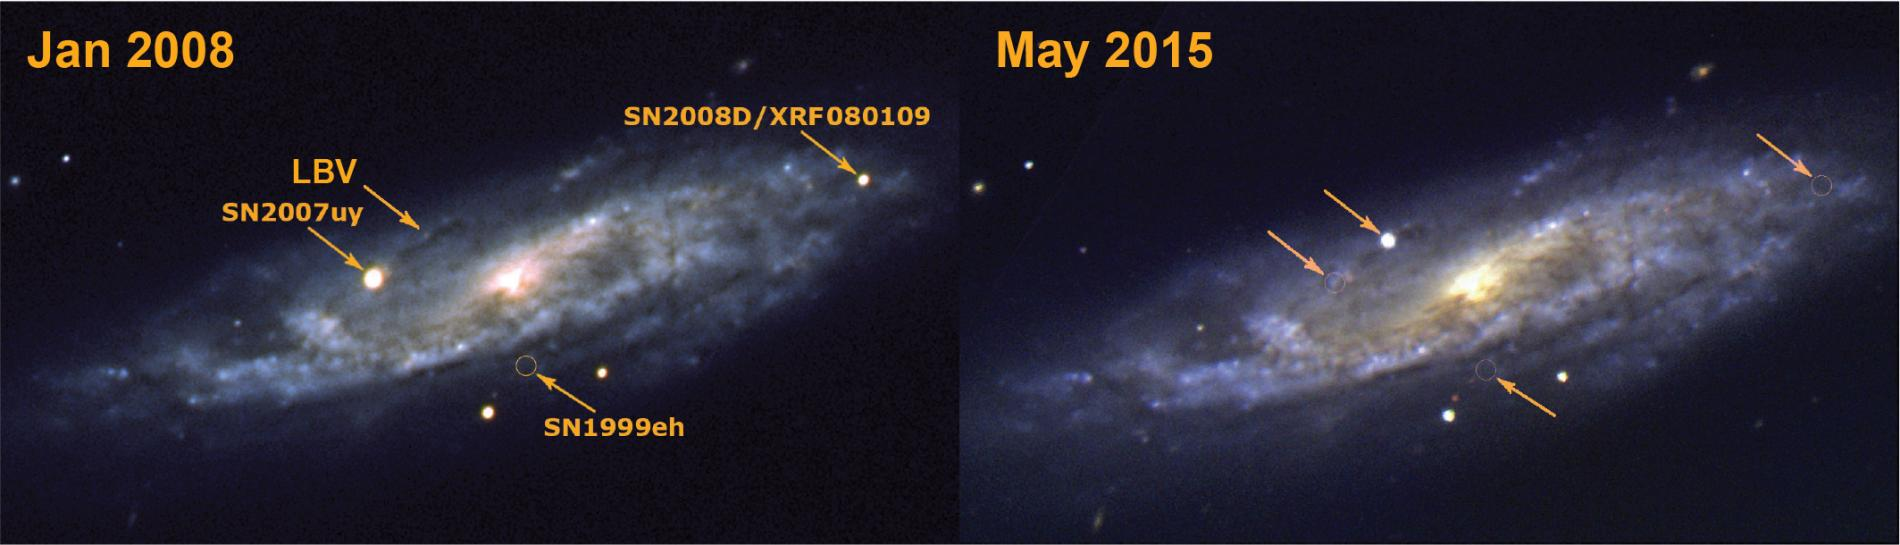 "SN2015bh: the end of a star or an ""impostor"" supernova?"